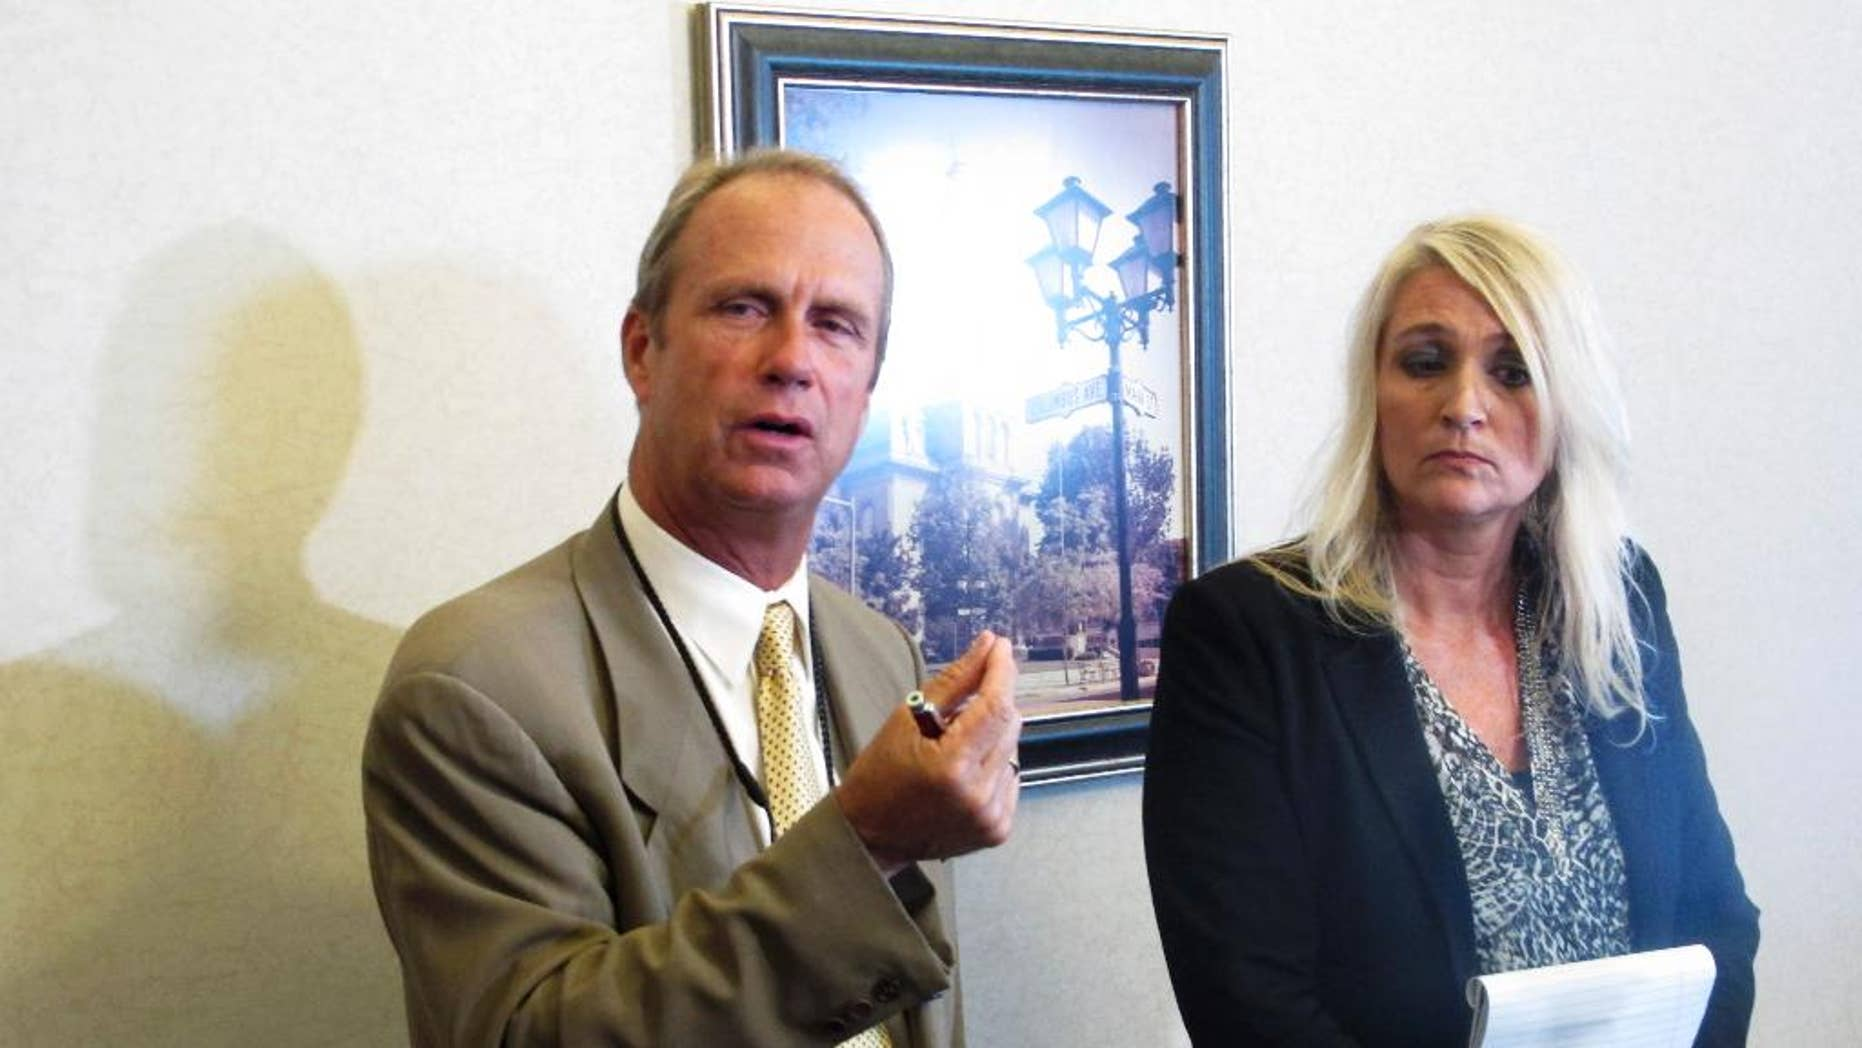 Logan County Prosecutor William Goslee, left, talks about a woman accused of killing her three sons over a 13-month span, alongside Melanie Engle, executive director of Logan County Children's Services, whose agency fought to keep a son who died from being returned home, on Wednesday, Aug. 19, 2015, in Bellefontaine, Ohio. Goslee said the system couldn't have foreseen such erratic behavior by the suspect. (AP Photo/Andrew Welsh-Huggins)